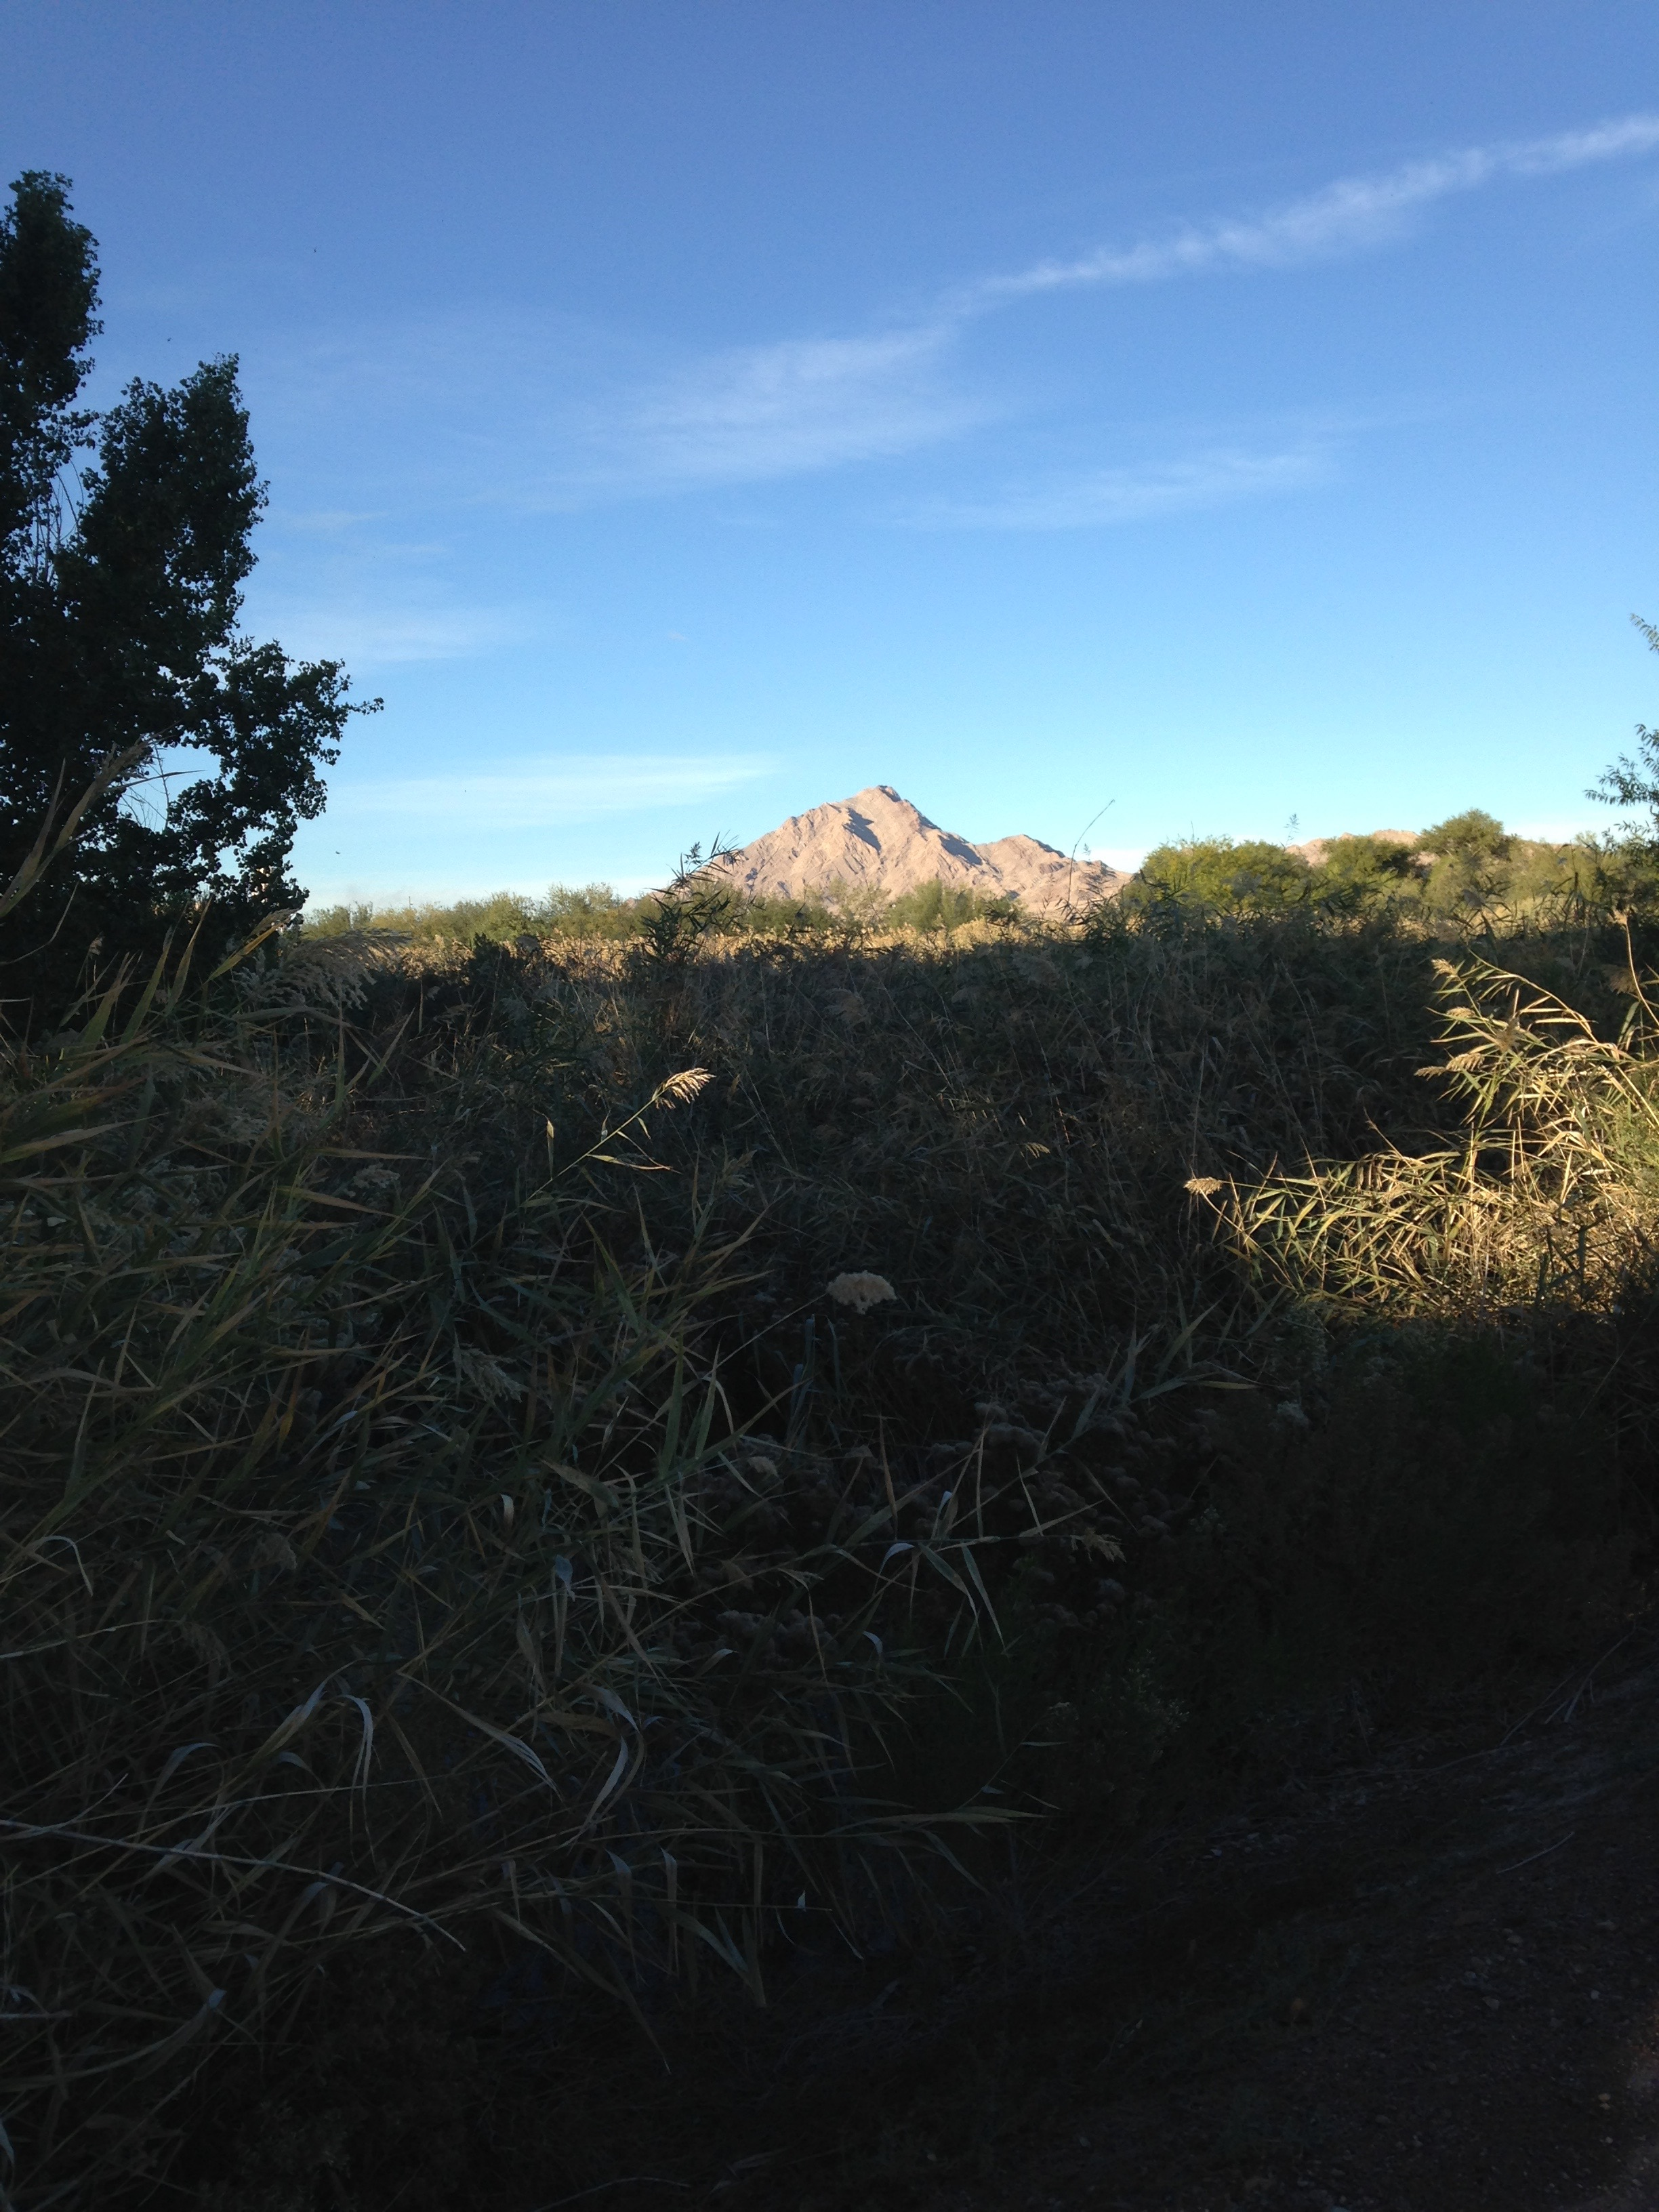 Wetlands Park with a view of Sunrise Mountain